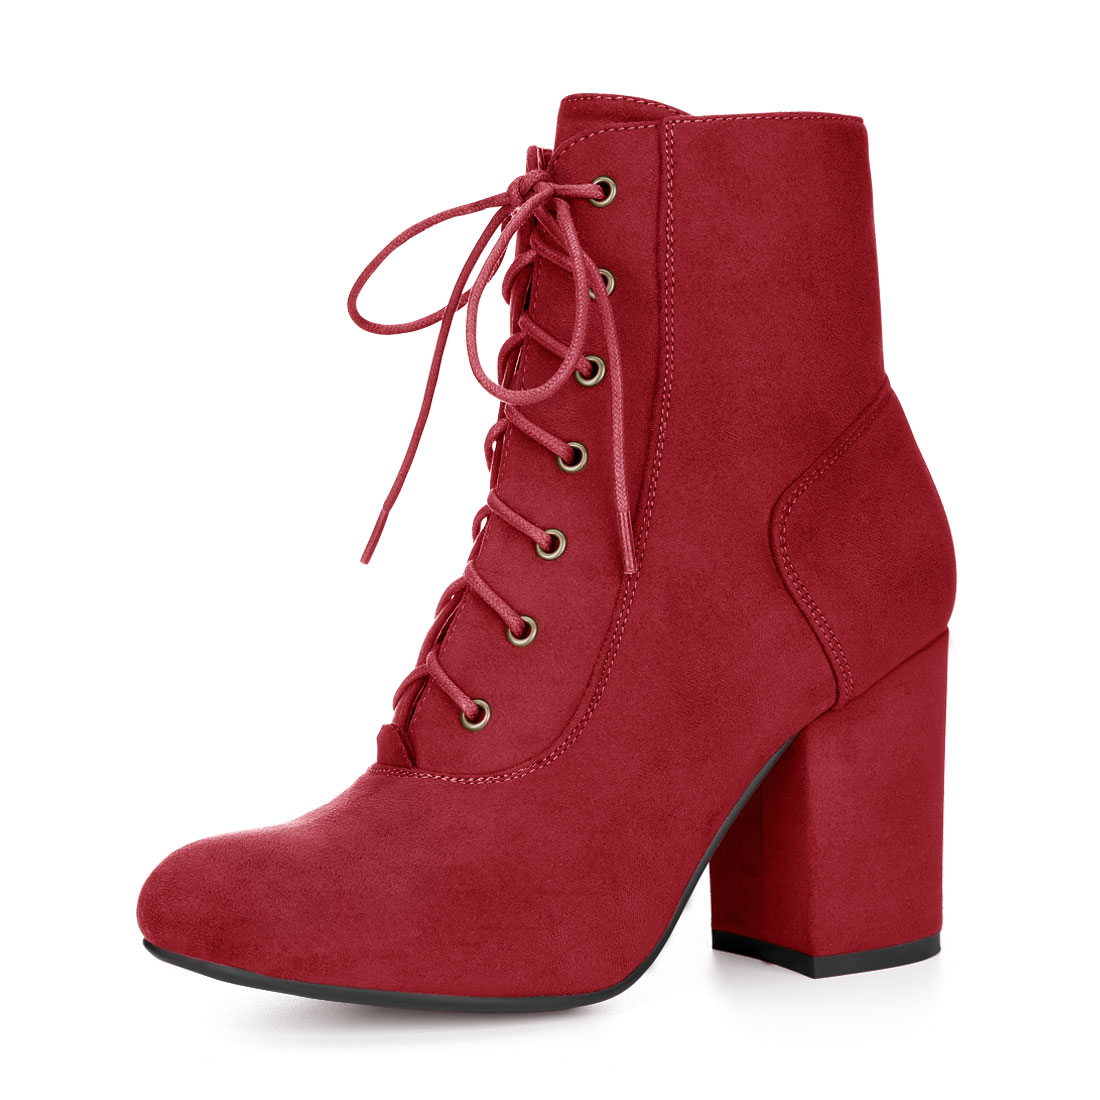 Allegra K Women Round Toe Chunky High Heel Lace Up Booties Red US 7